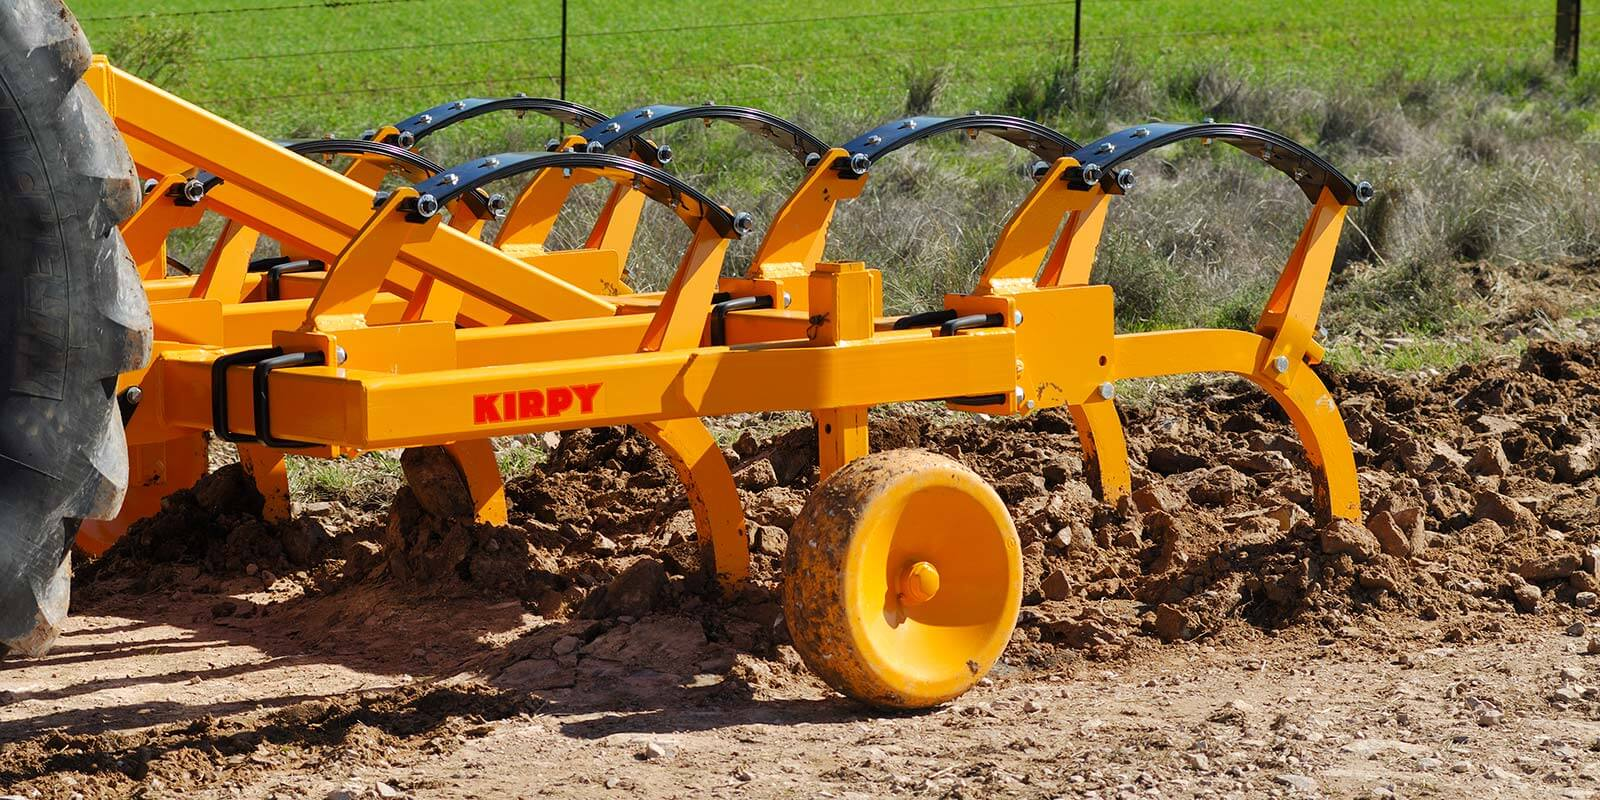 Kirpy Ripper heavy duty cultivator and road ripper